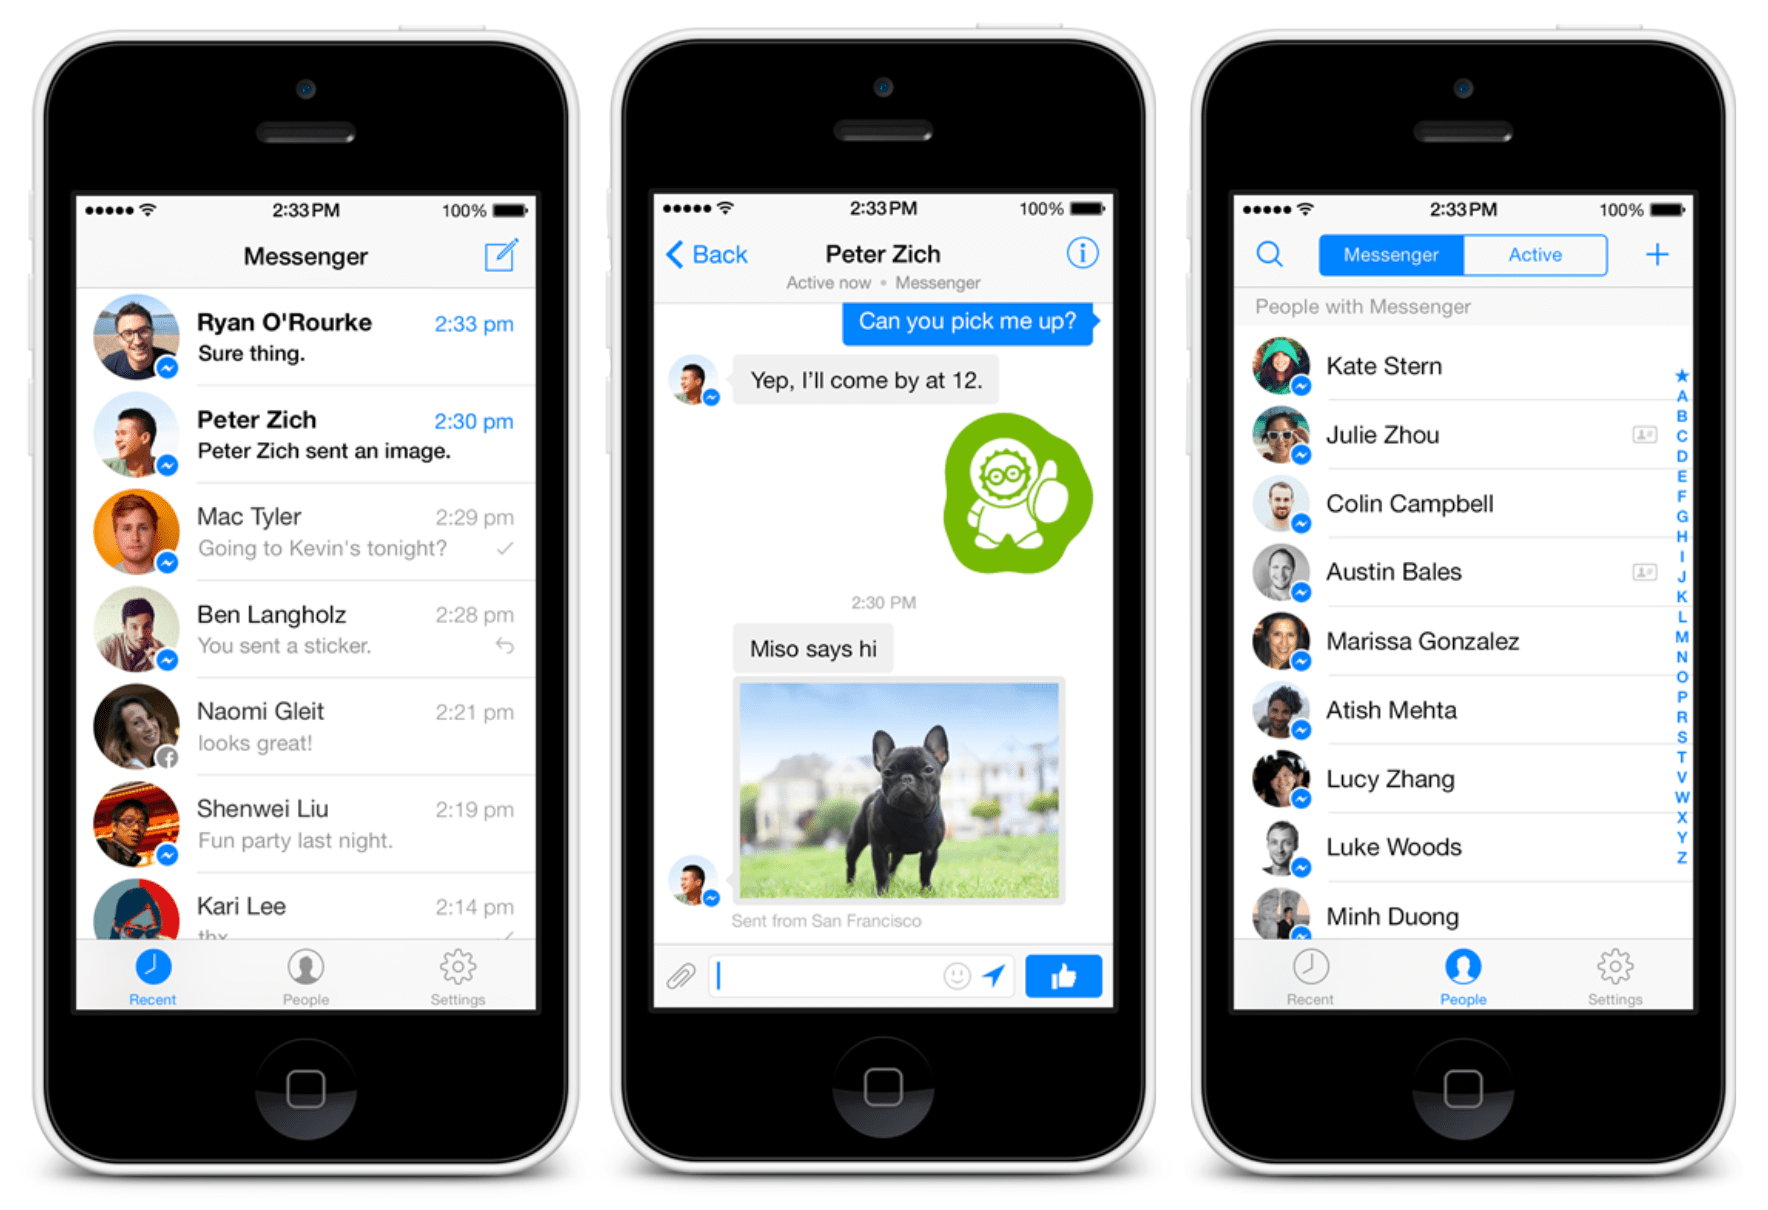 Descargar Messenger Gratis Descargar Facebook Messenger Para Iphone